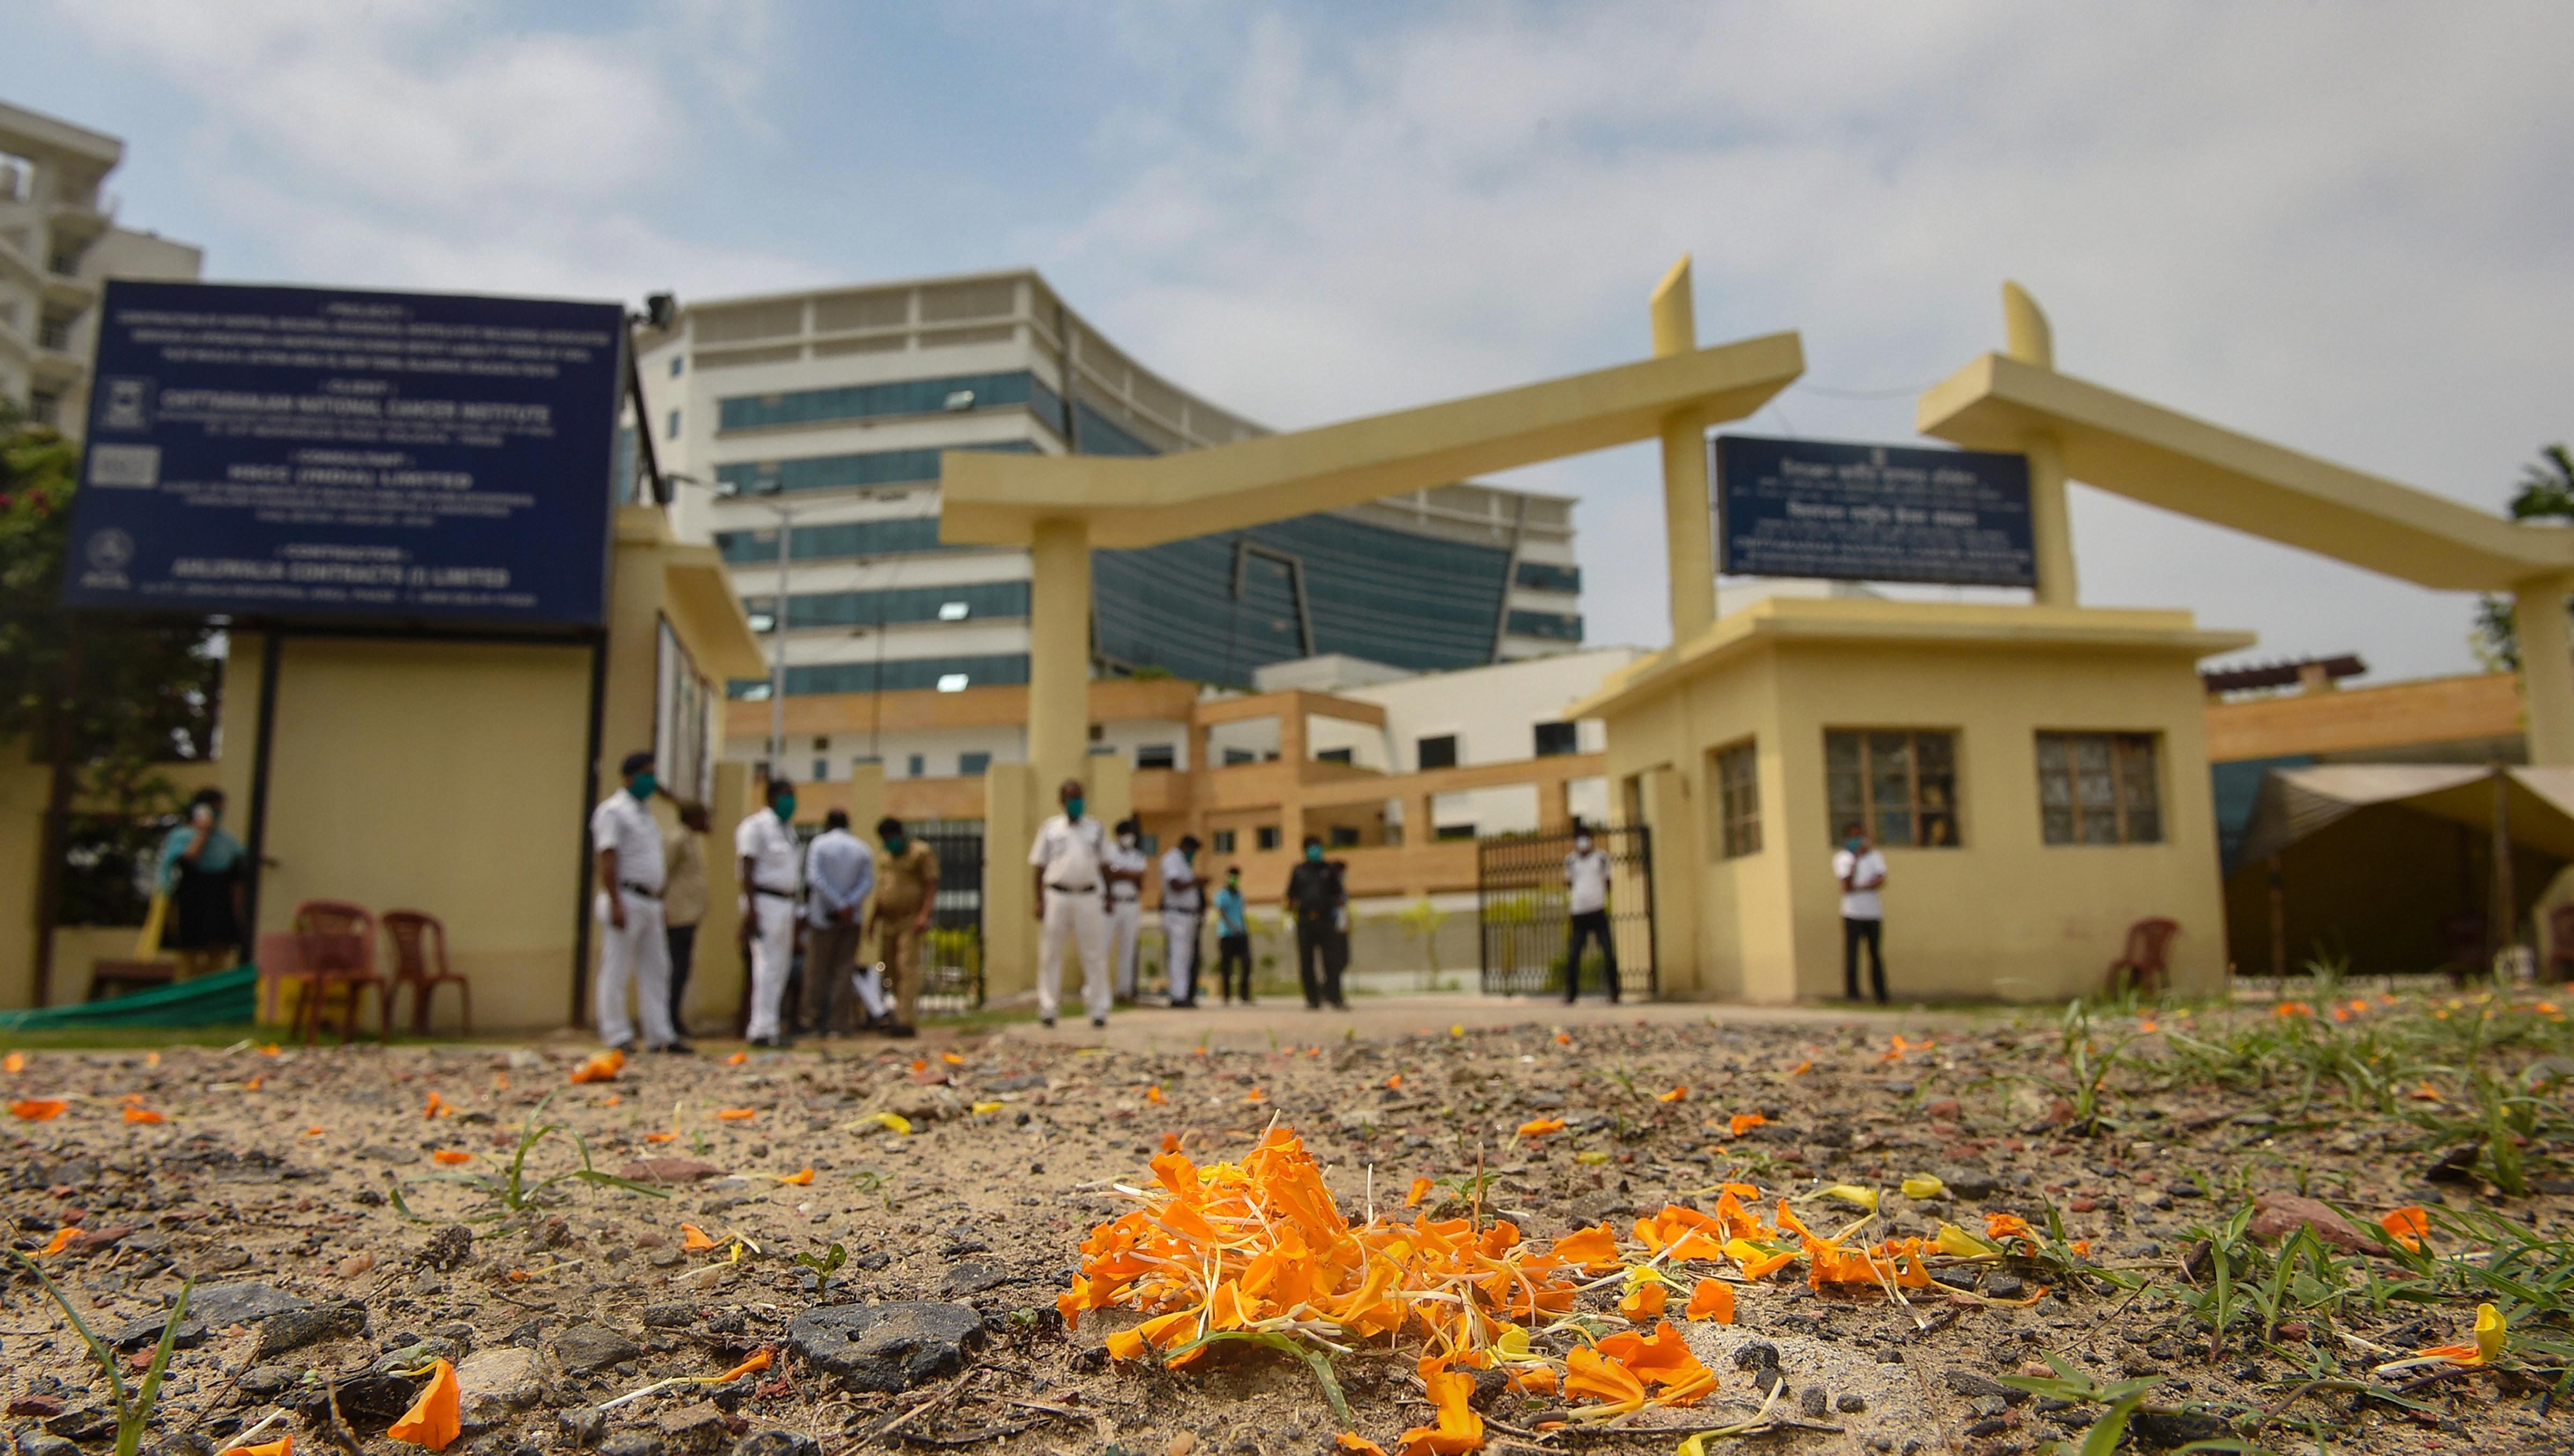 An Army helicopter showers flower petals on medics to express gratitude for their services in the fight against Covid-19 at Chittaranjan National Cancer Institute, during the nationwide lockdown imposed in the wake of coronavirus pandemic, in Calcutta, Sunday, May 03, 2020.